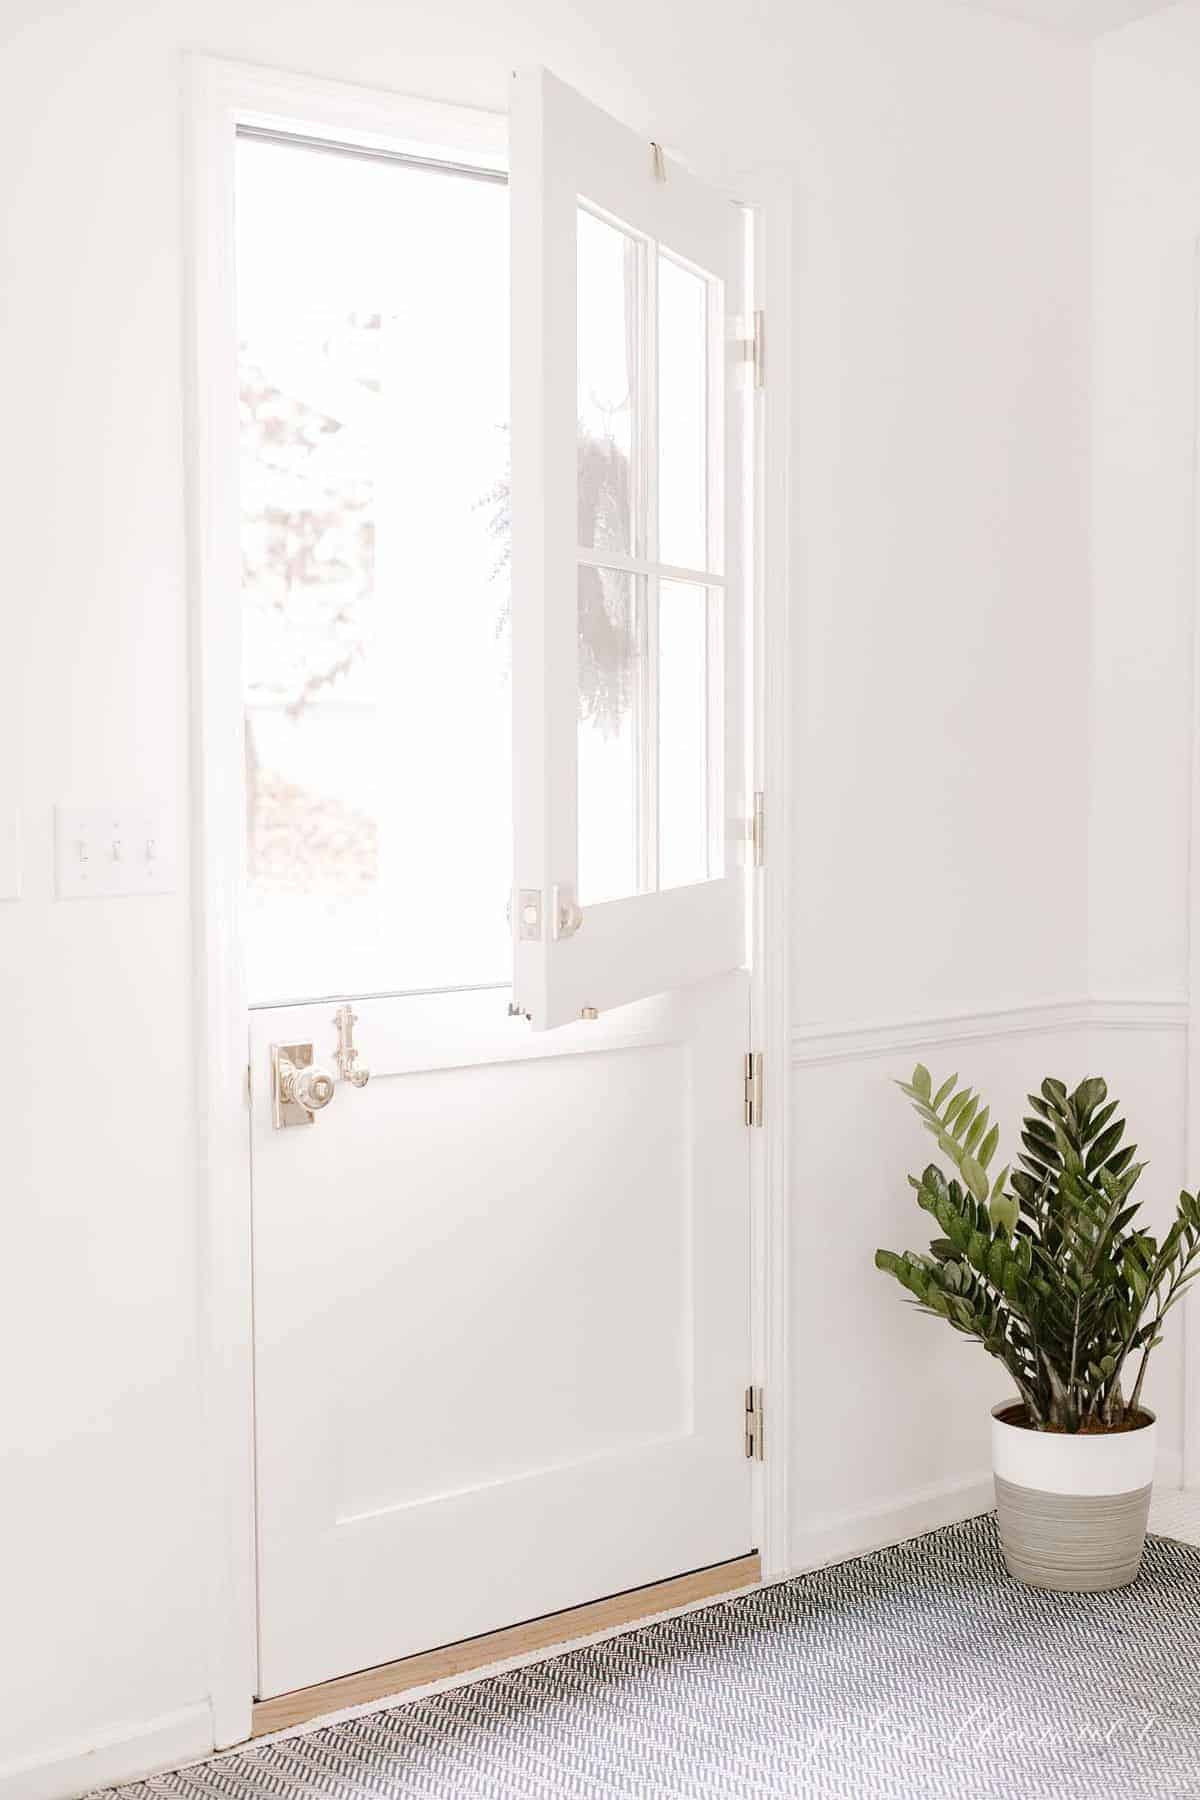 A white exterior dutch door, top open, with a Zamioculcas Zamiifolia on the floor by the door. #zzplant